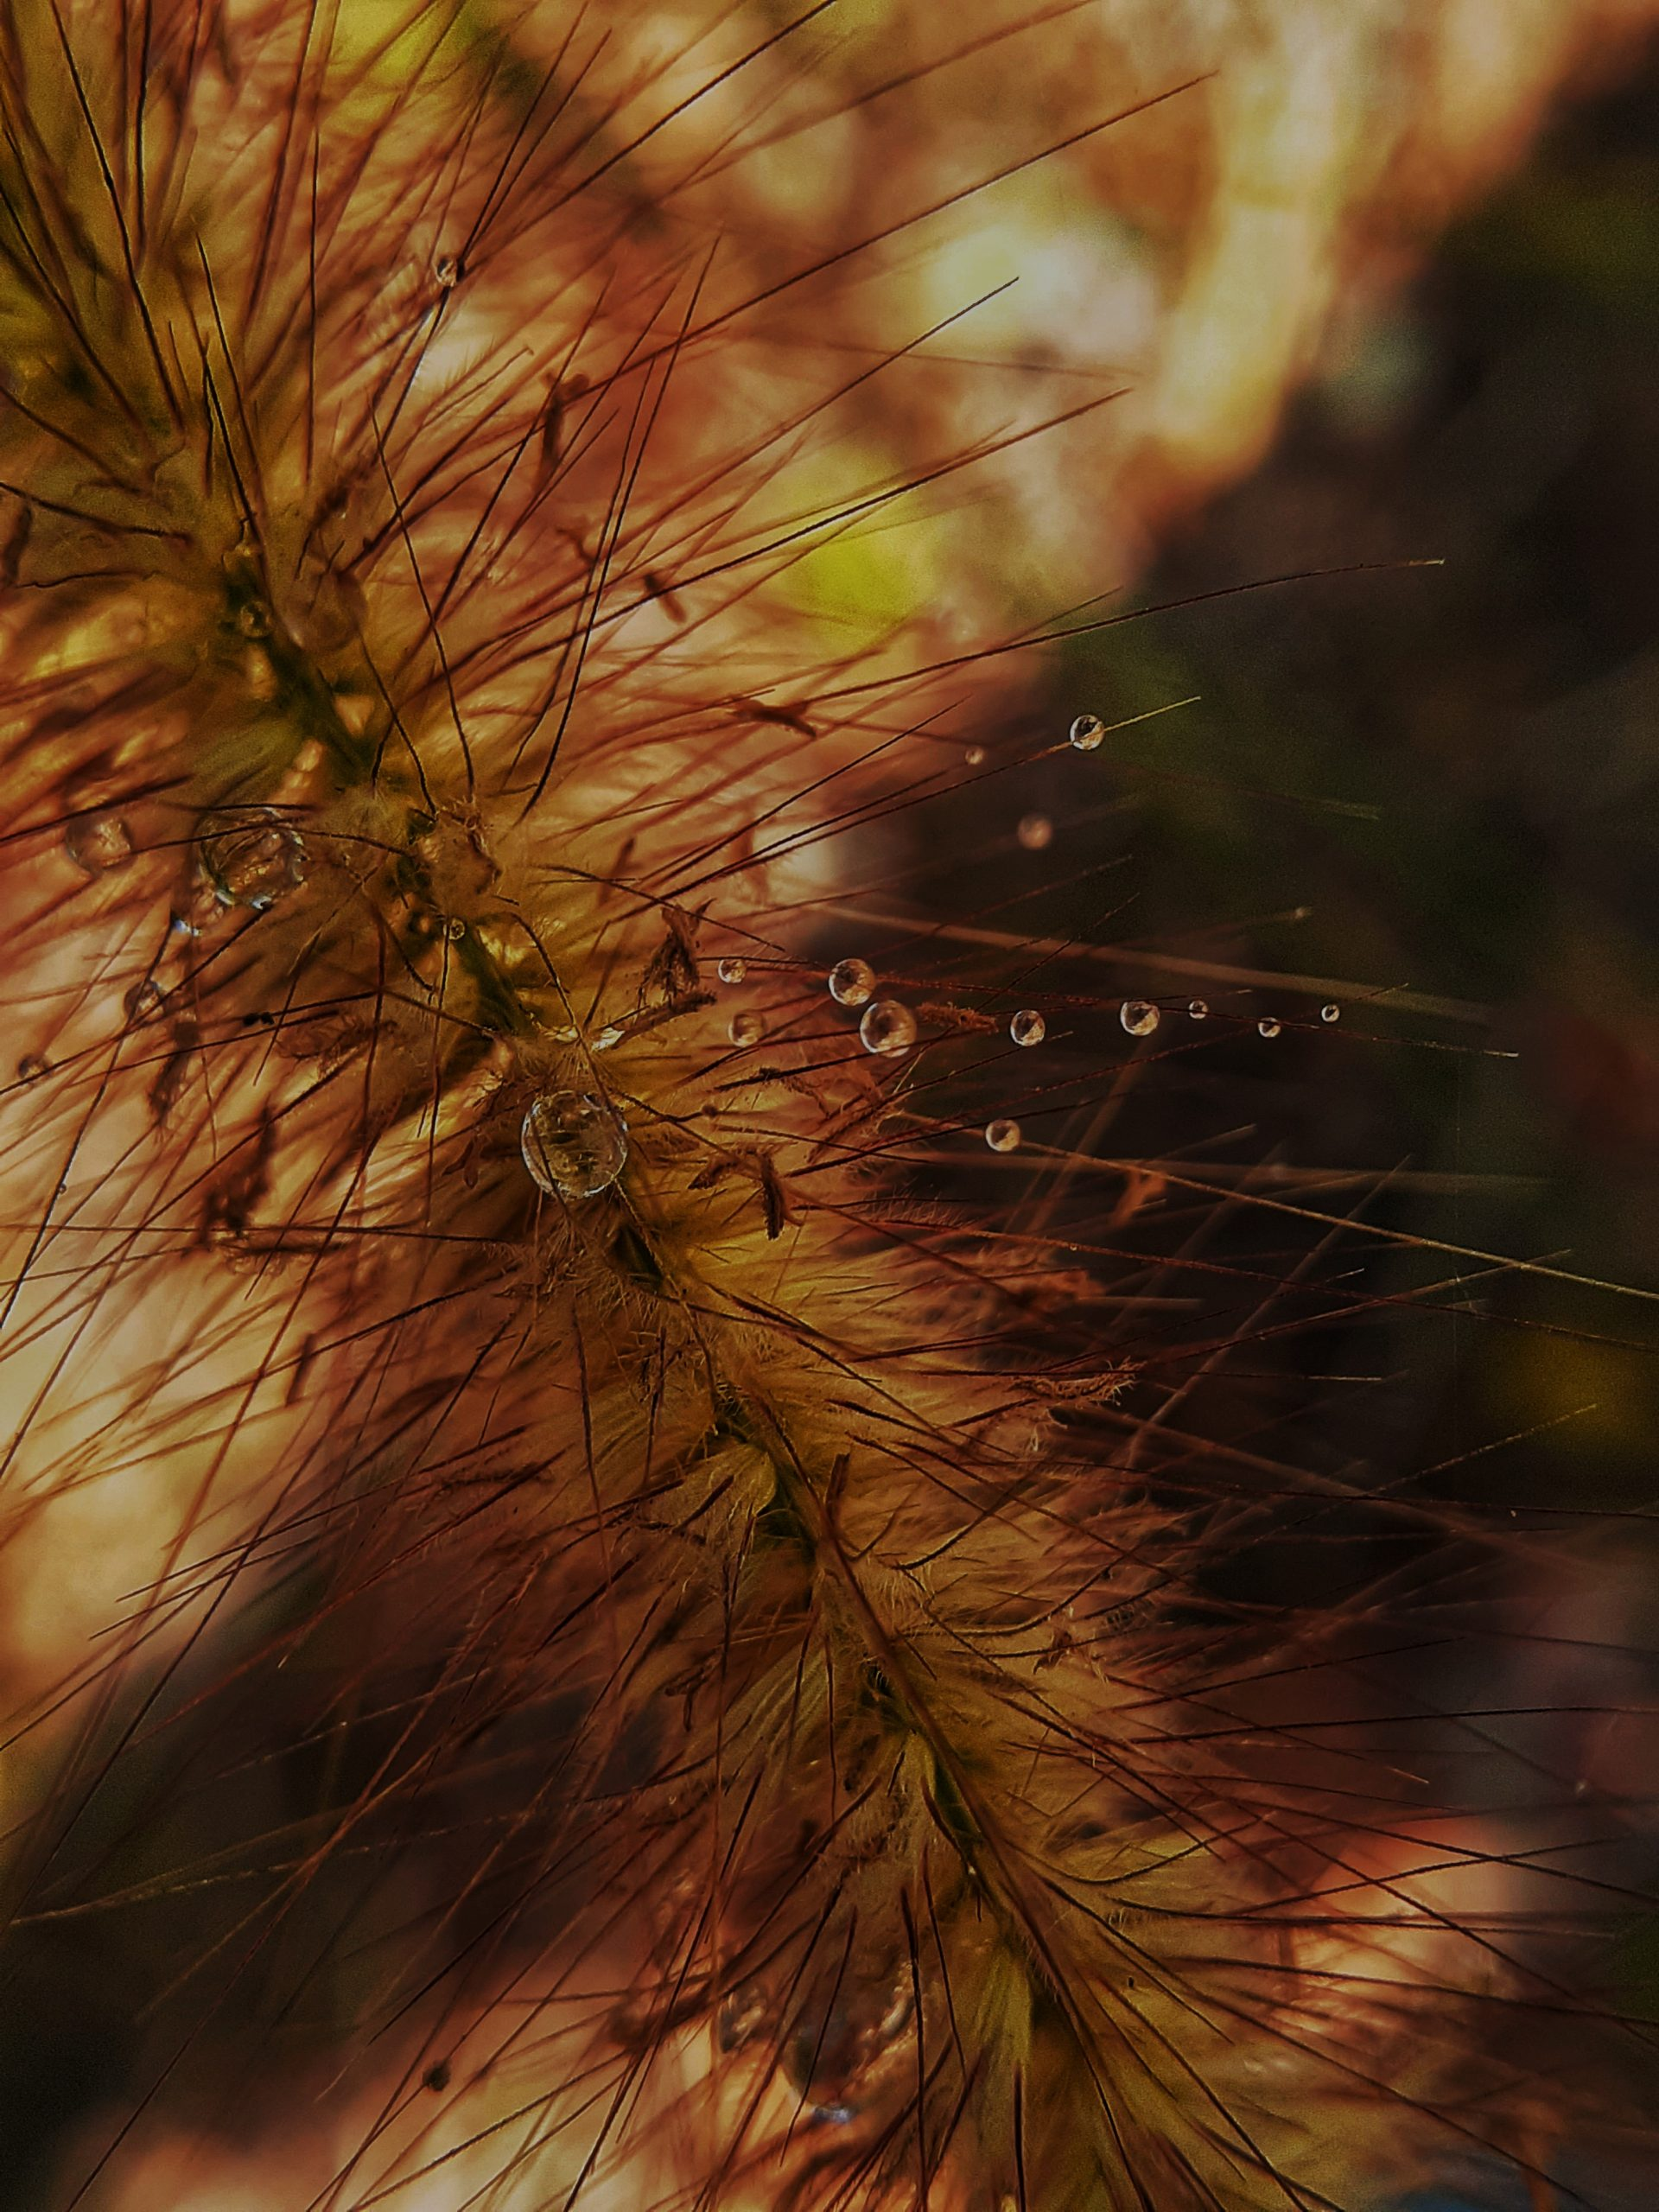 Waterdrops on a plant